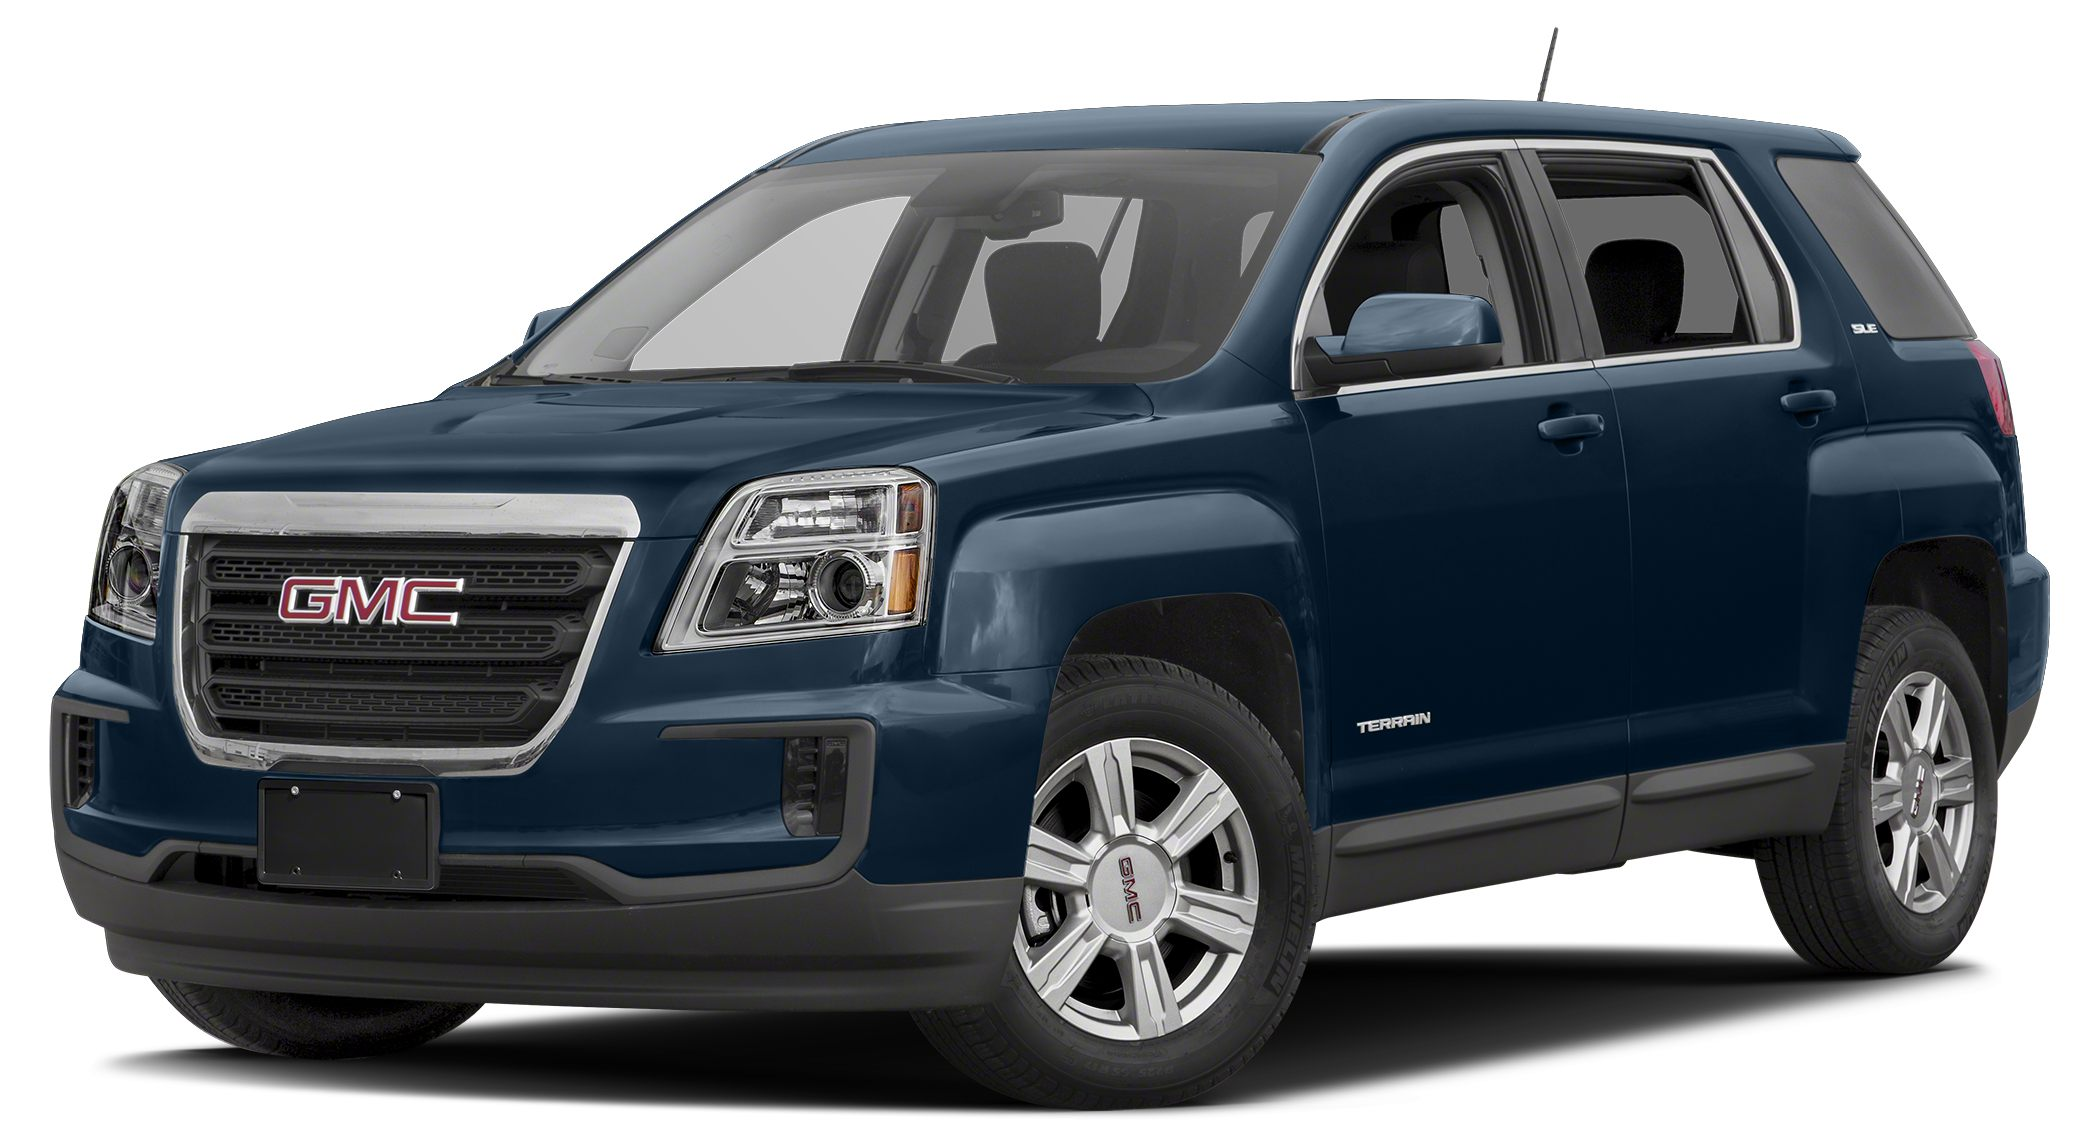 2016 GMC Terrain SLE-1 SLATE BLUE METALLIC exterior and LIGHT TITANIUM interior SLE trim Back-Up